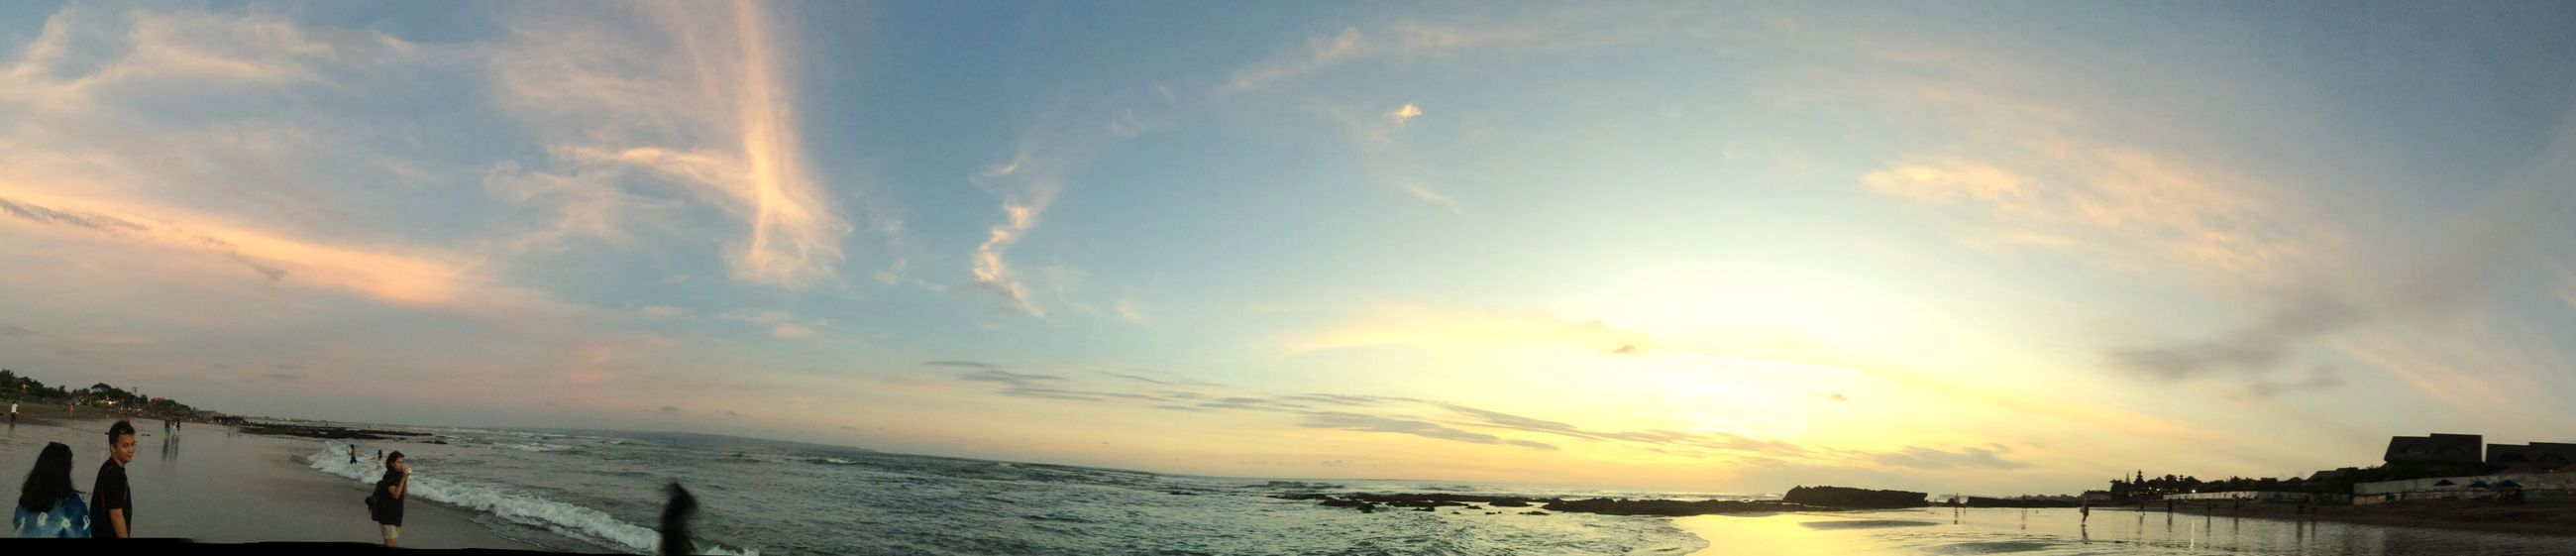 Sunset at Canguu Sunset Water Sea Sky Tranquil Scene Scenics Cloud Panoramic Tranquility Vacations Beauty In Nature Calm Nature Sun Ocean Coastline Cloud - Sky Cloudscape Tourism Waterfront Visitindonesia Bali, Indonesia Iphone5s